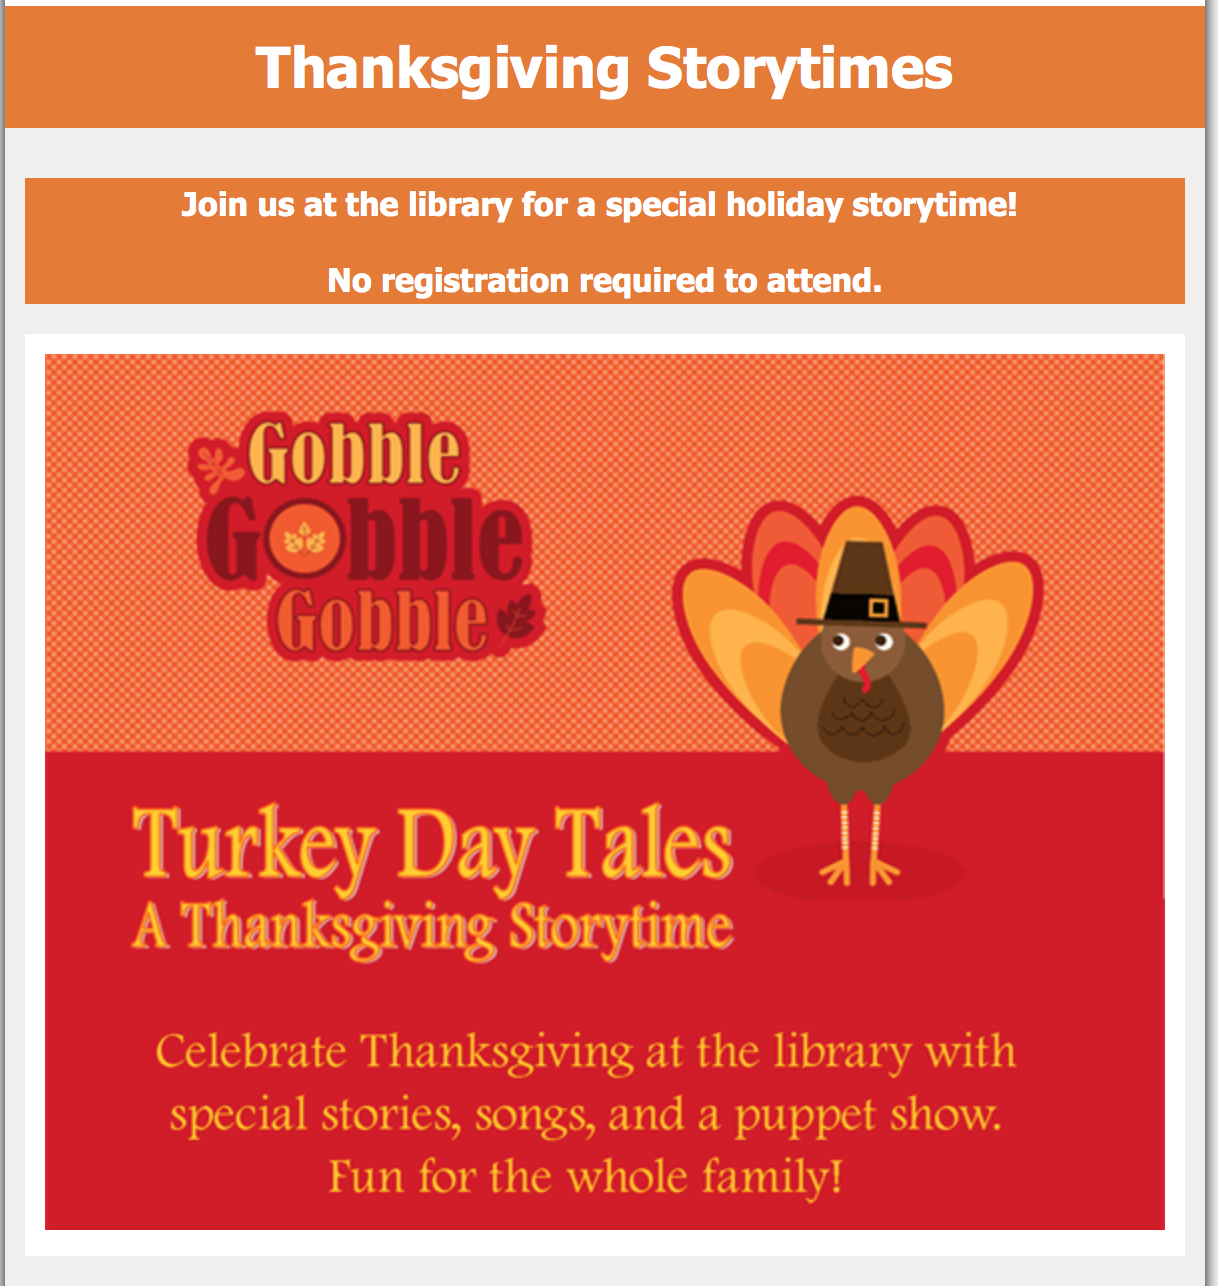 Turkey Day Tales: A Thanksgiving Storytime at the Forsyth County Libraries